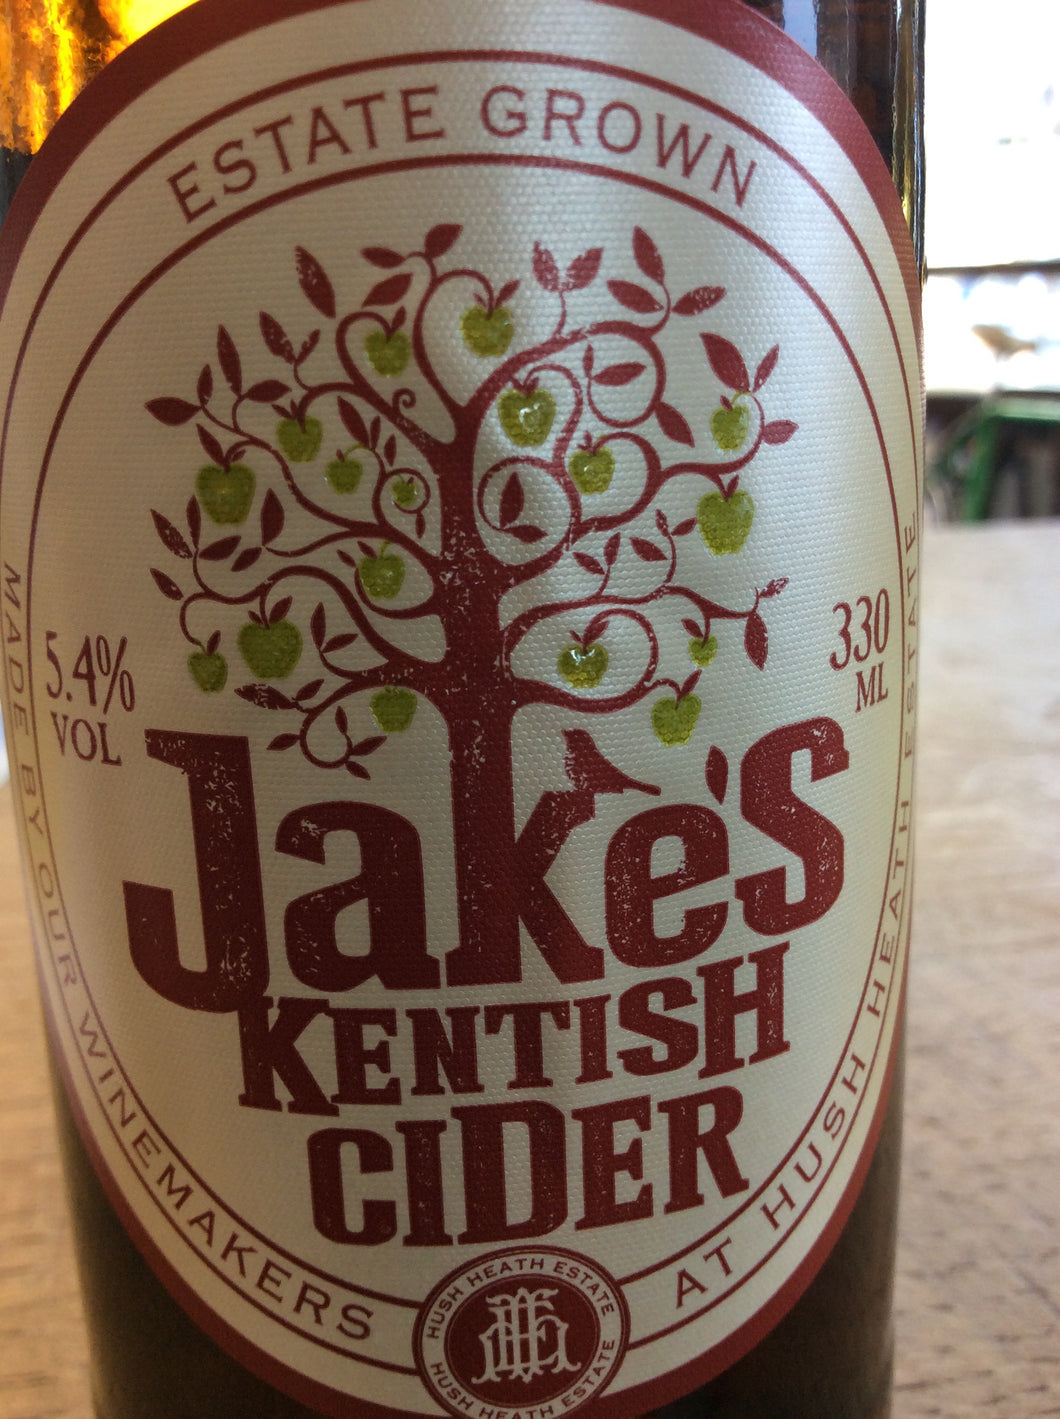 Jake's Kentish Cider